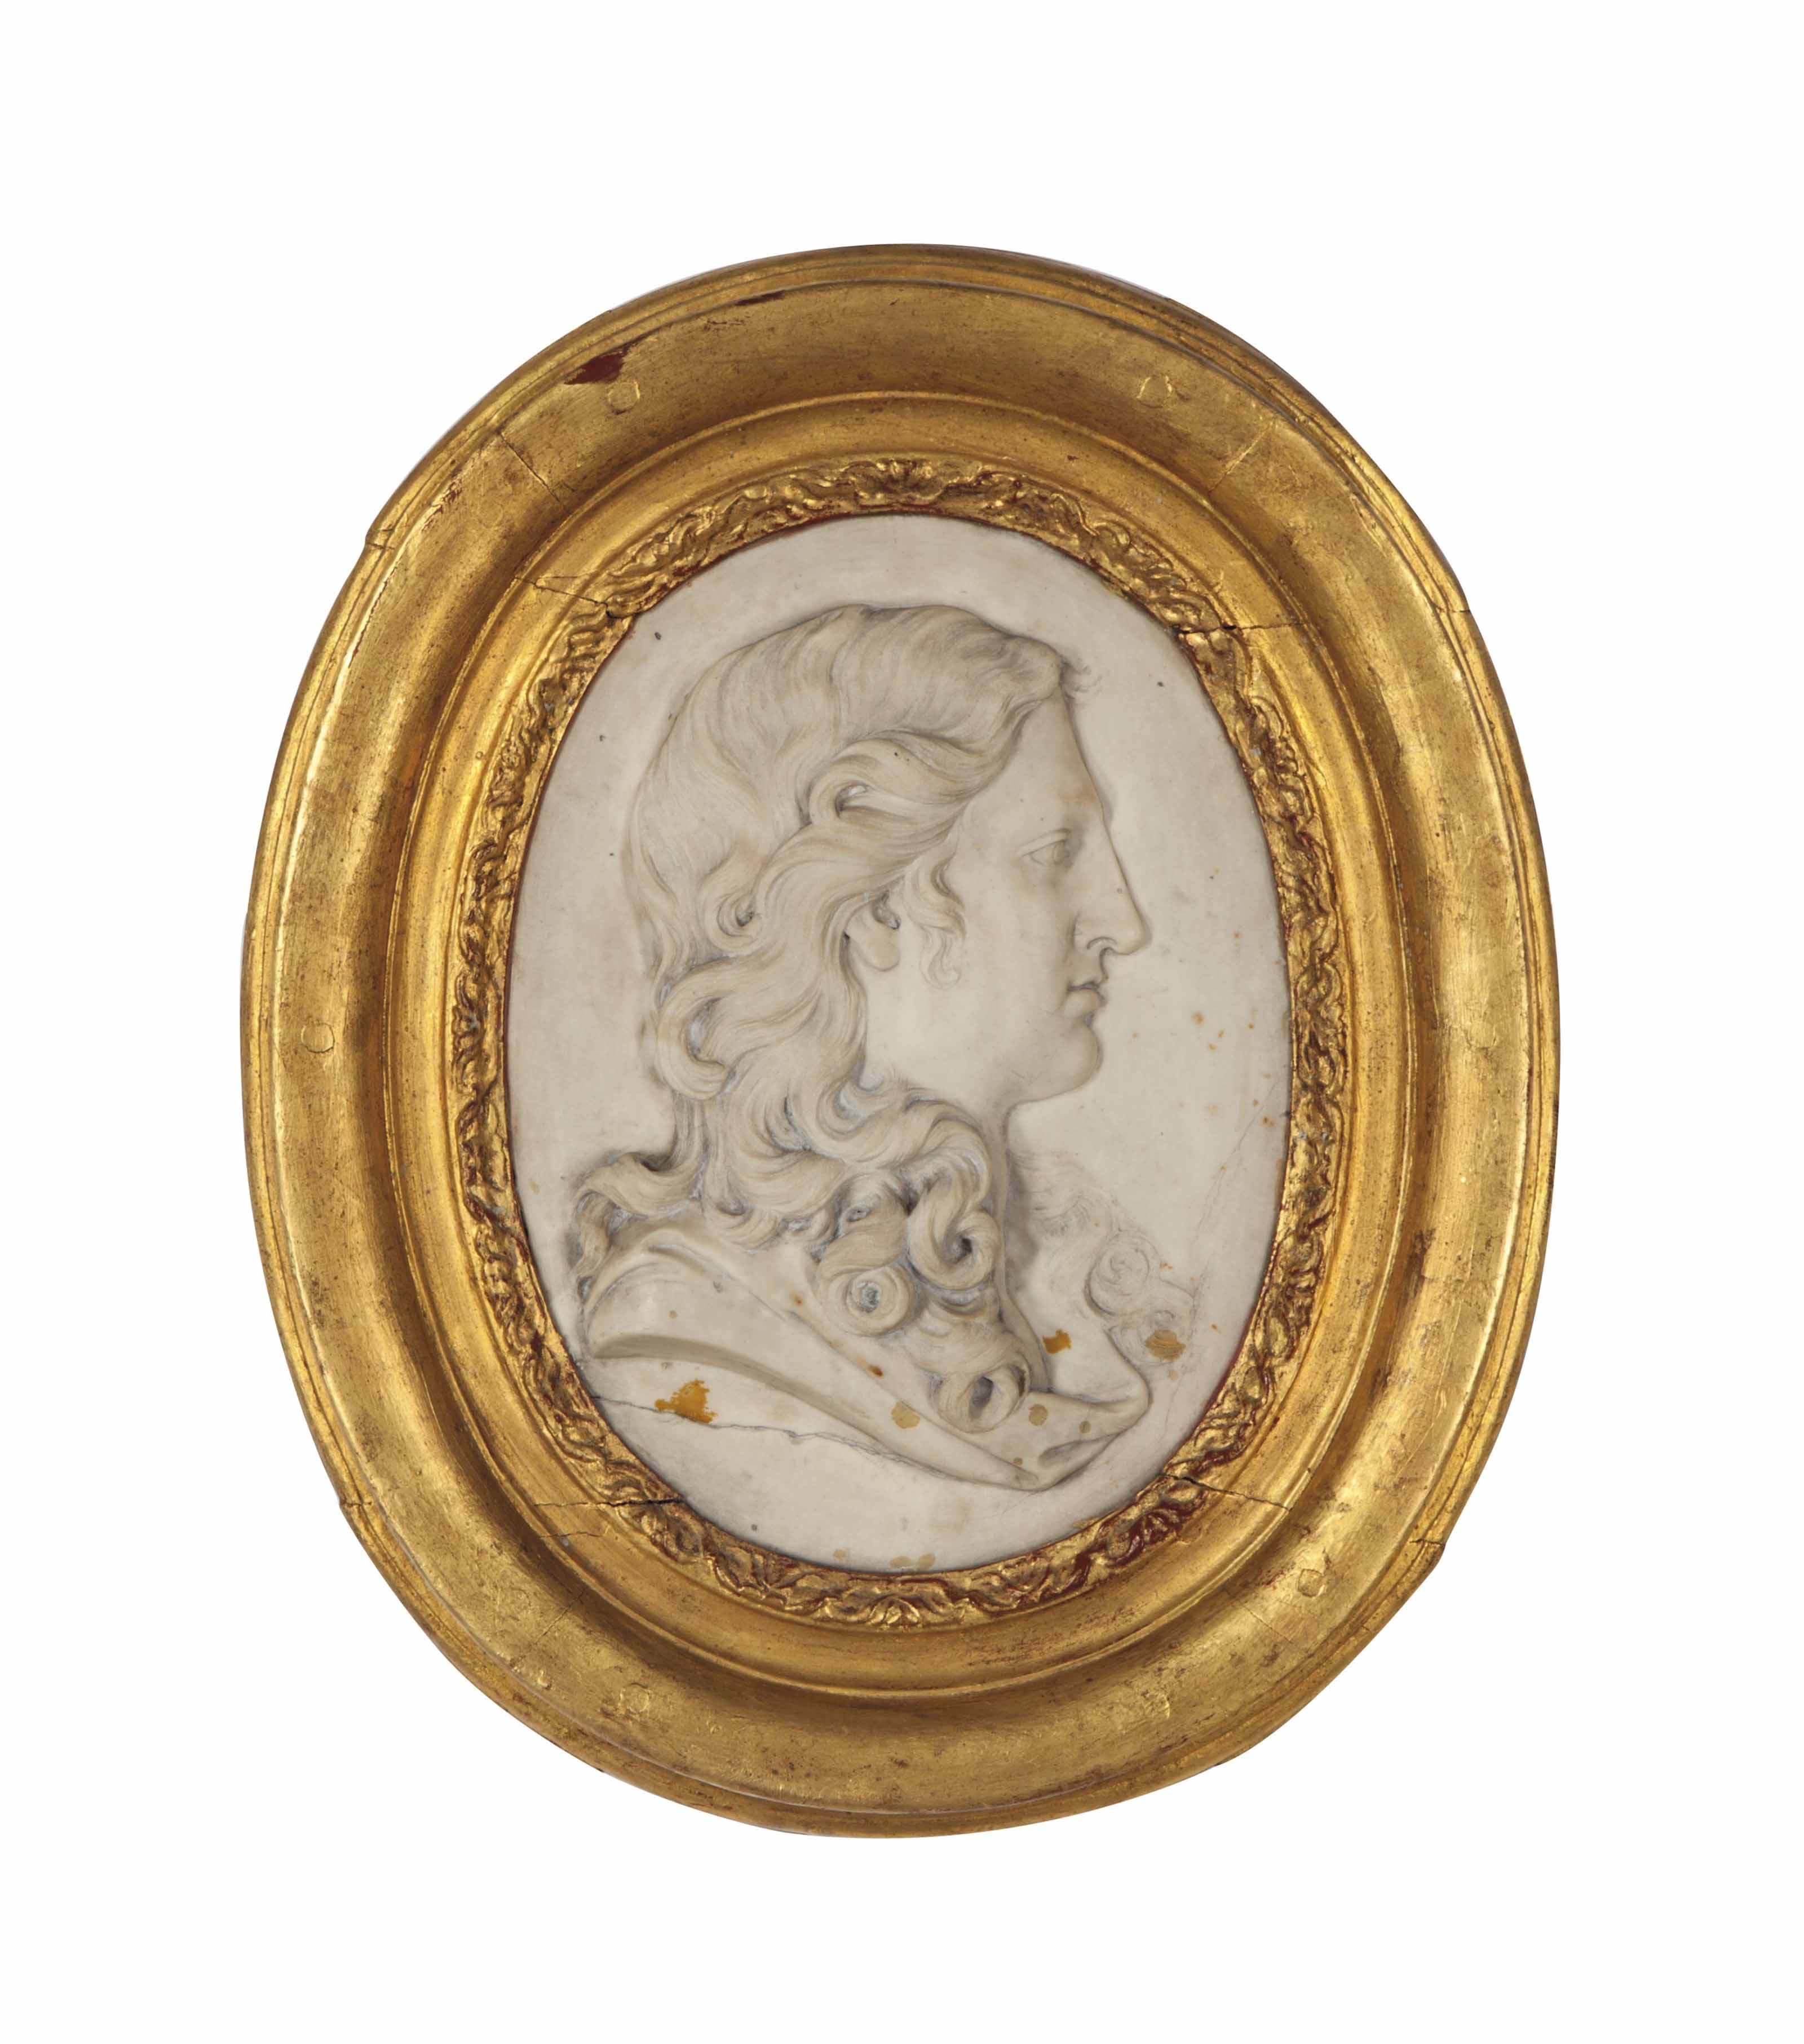 A REGENCE MARBLE PORTRAIT BUST OF A YOUNG MAN,